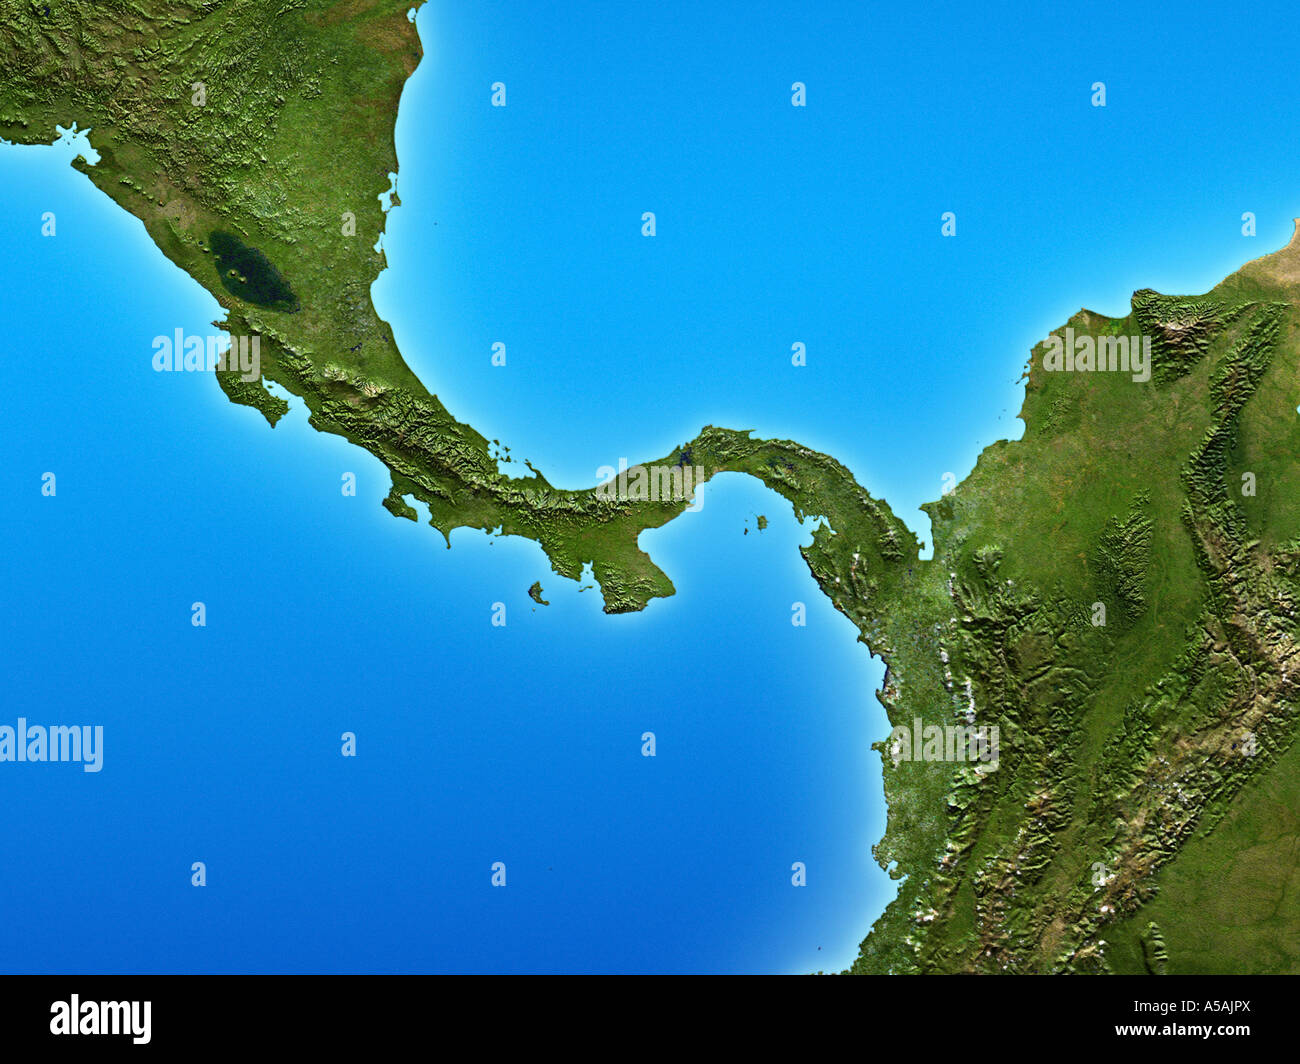 south america landform map with Stock Photo Isthmus Of Central America 11252017 on Qatar Physical Maps likewise Plateau Landform in addition List of longest rivers of Canada likewise Maps Of Saudi Arabia additionally 137830.